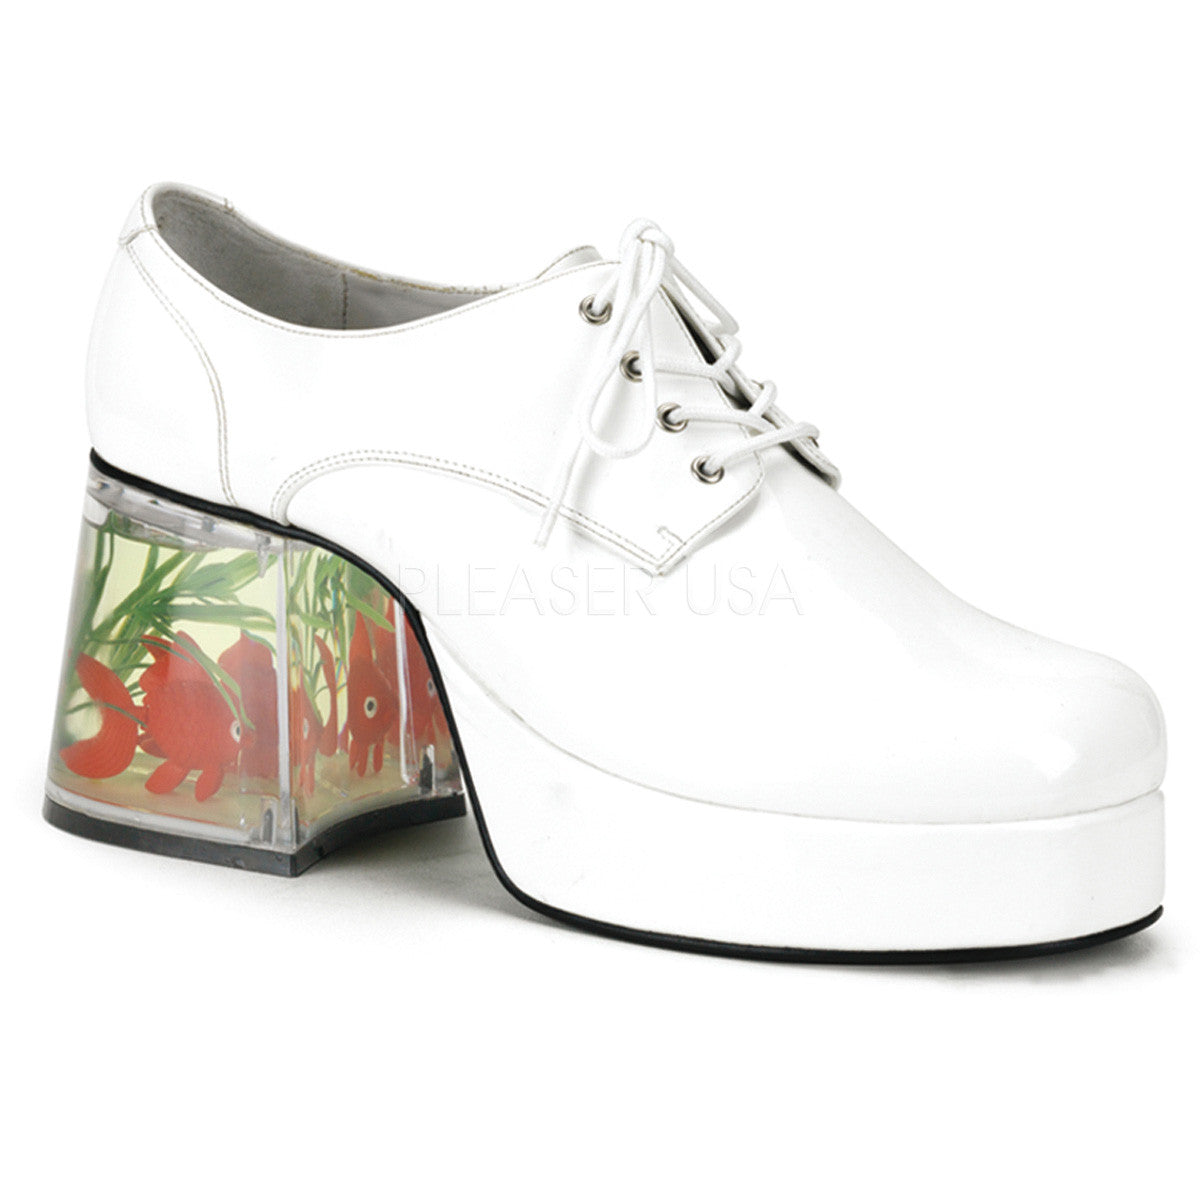 ad3fef83ade6 Men s White 70s 80s Disco Platform Shoes With Fish